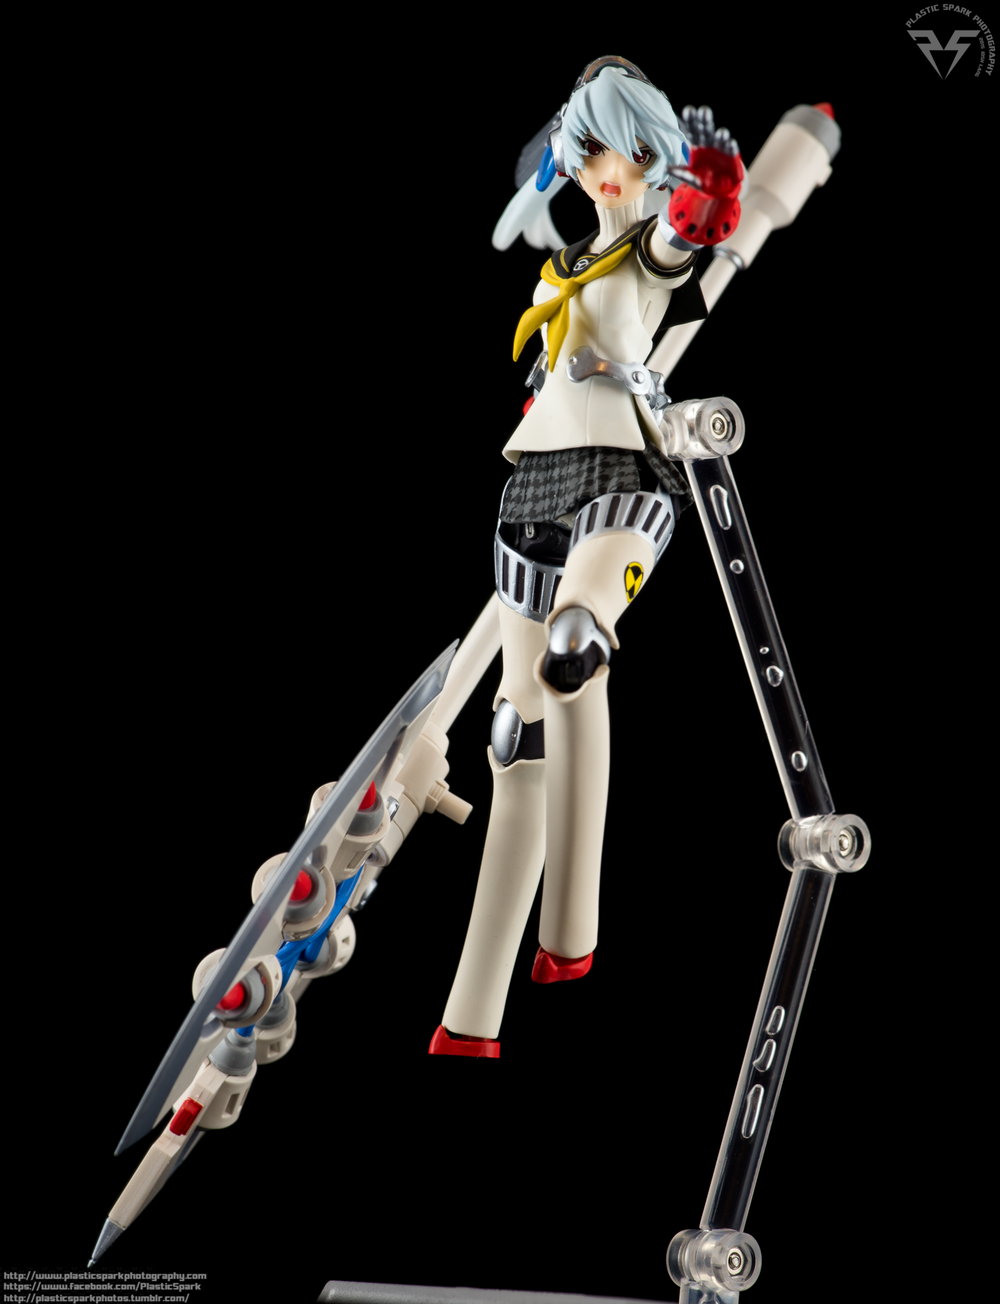 Figma-Labrys-(31-of-33).png